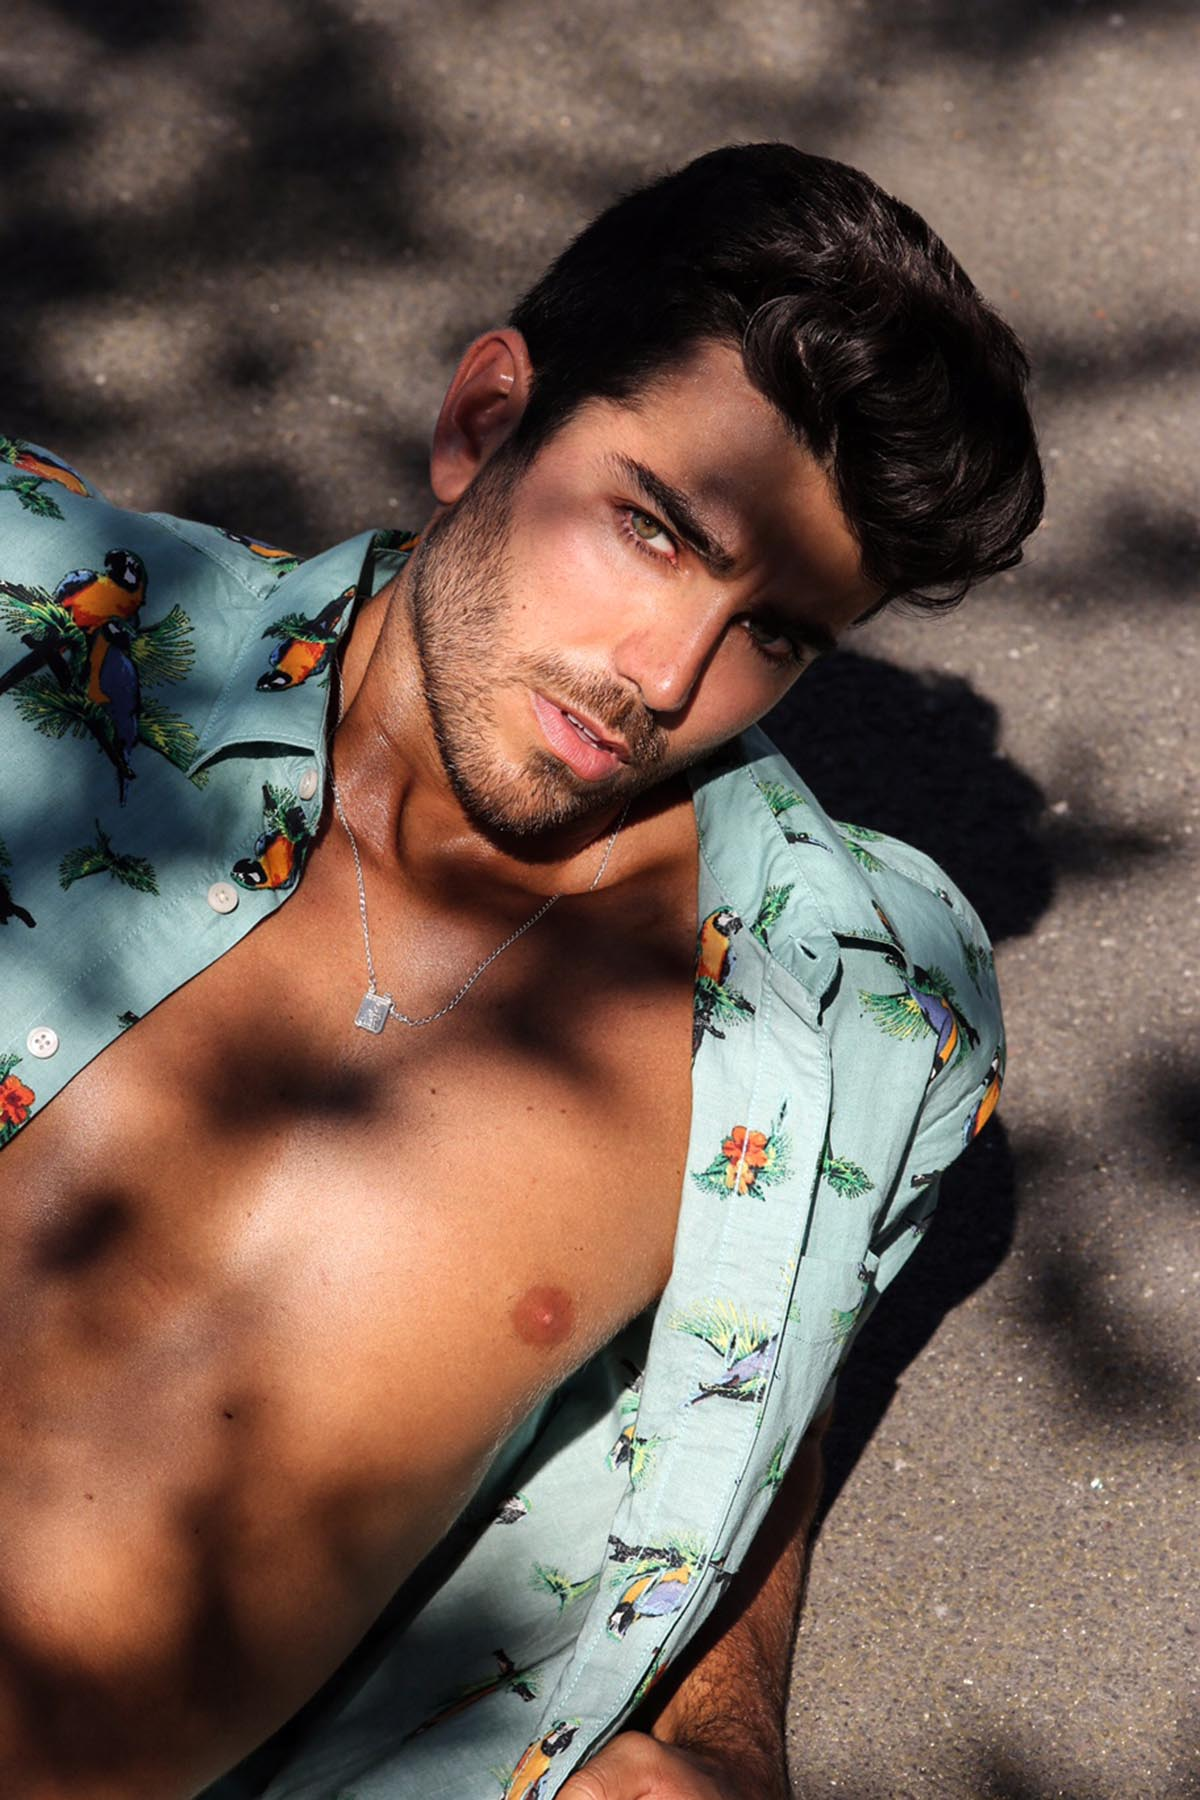 Luis Freitas Melo by Arron Dunworth